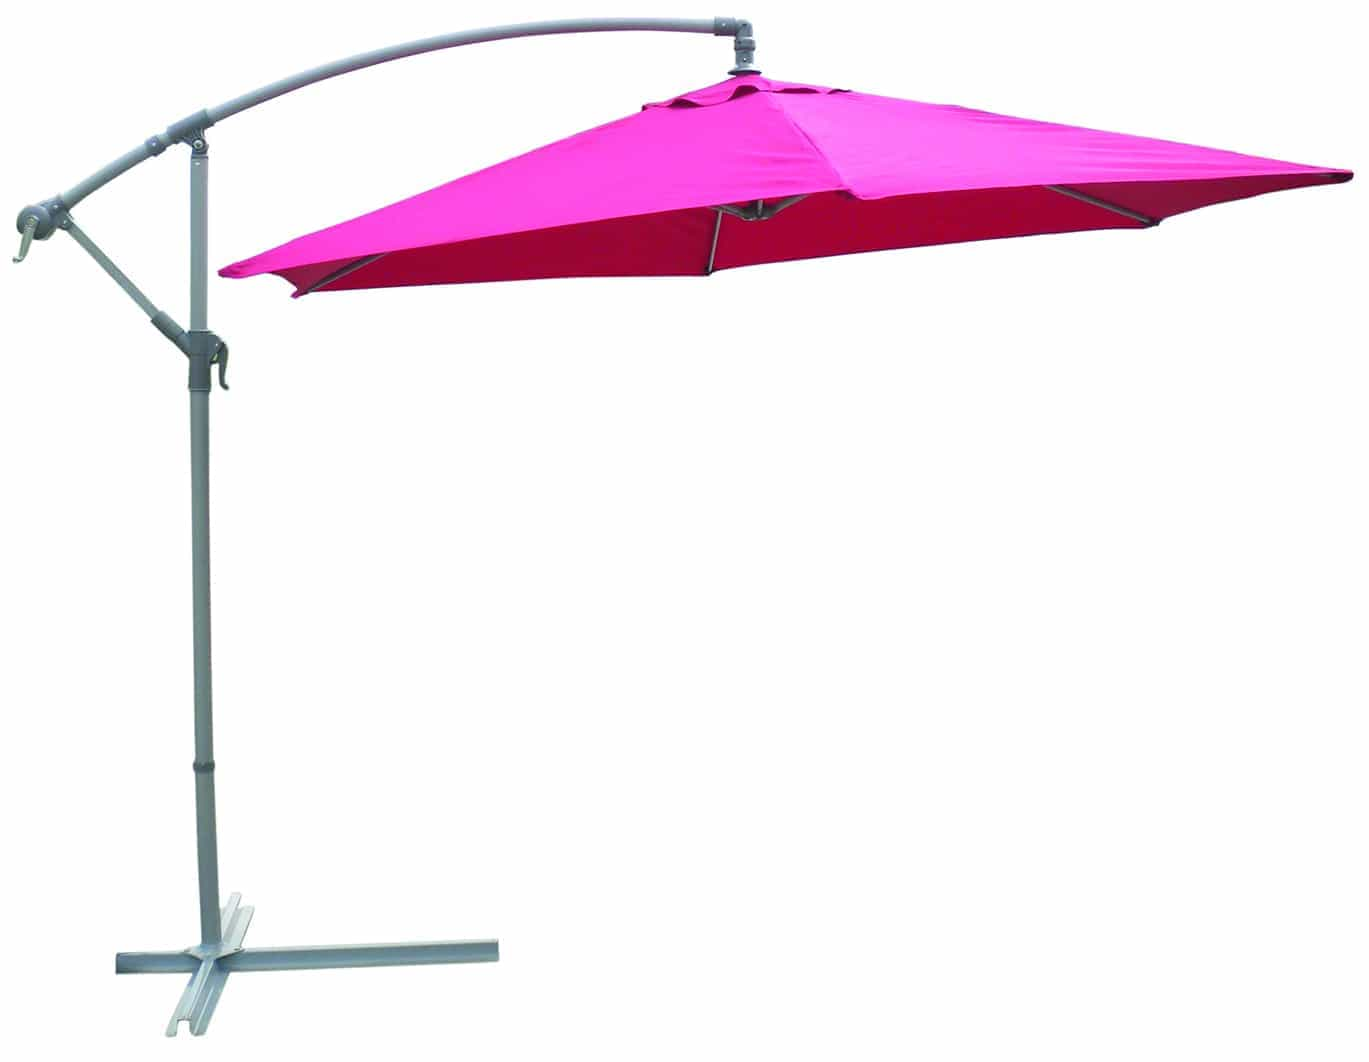 3m Banana Aluminium Parasol Cream Garden Furniture Ireland Outdoor Furniture Ireland - Garden Furniture Clearance Parasols